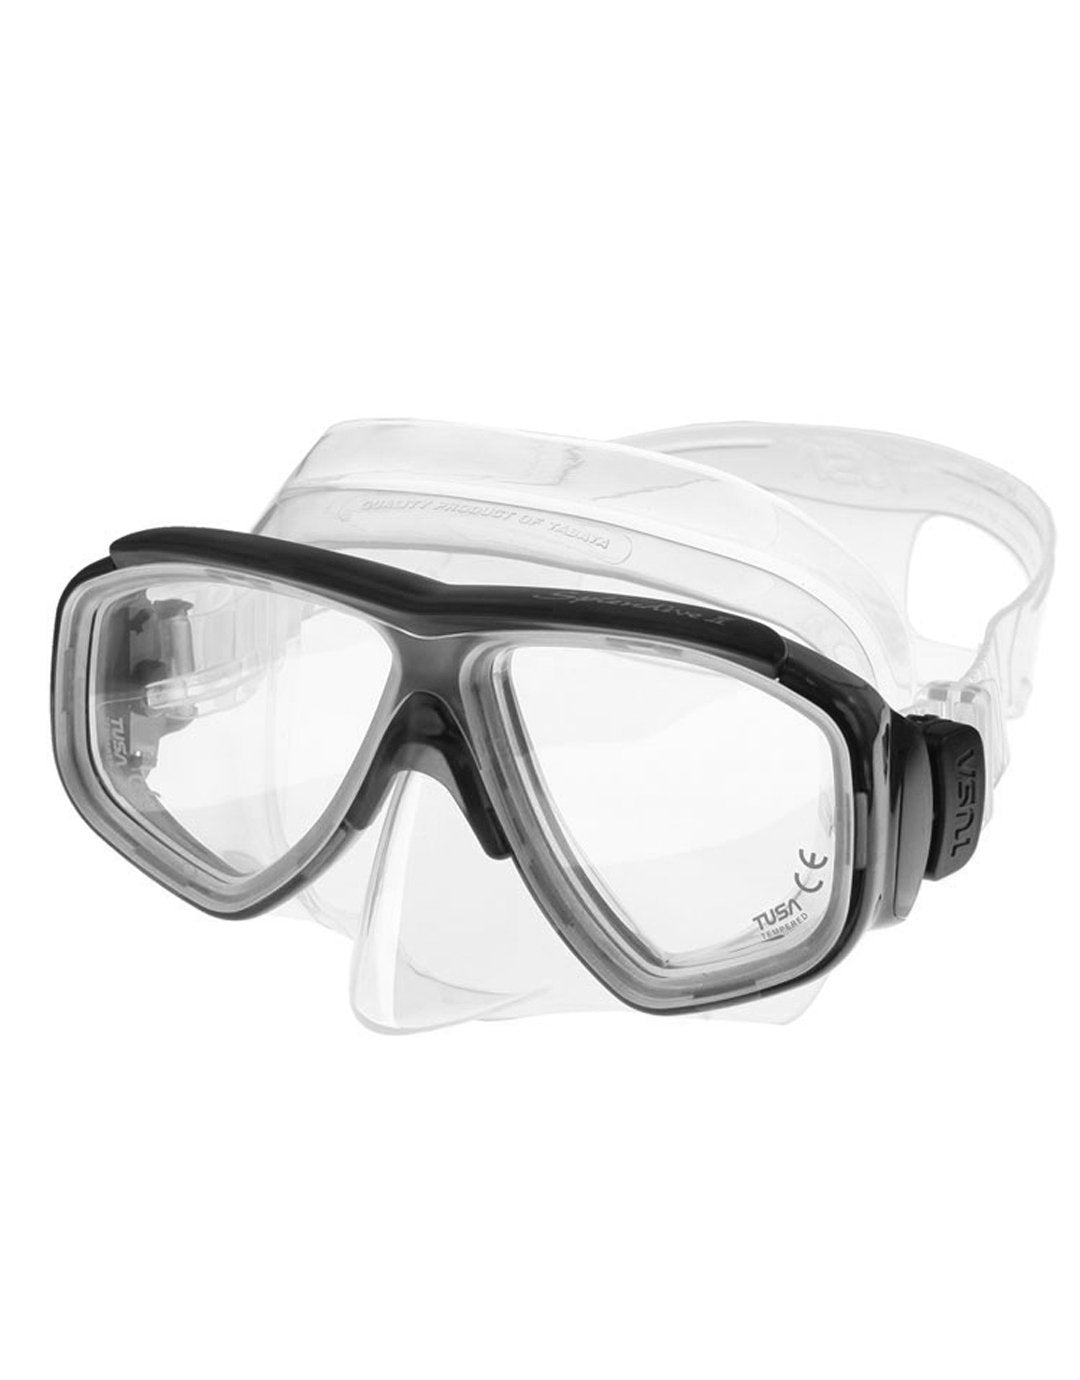 Image of TUSA Splendive II Mask - Flo Yellow